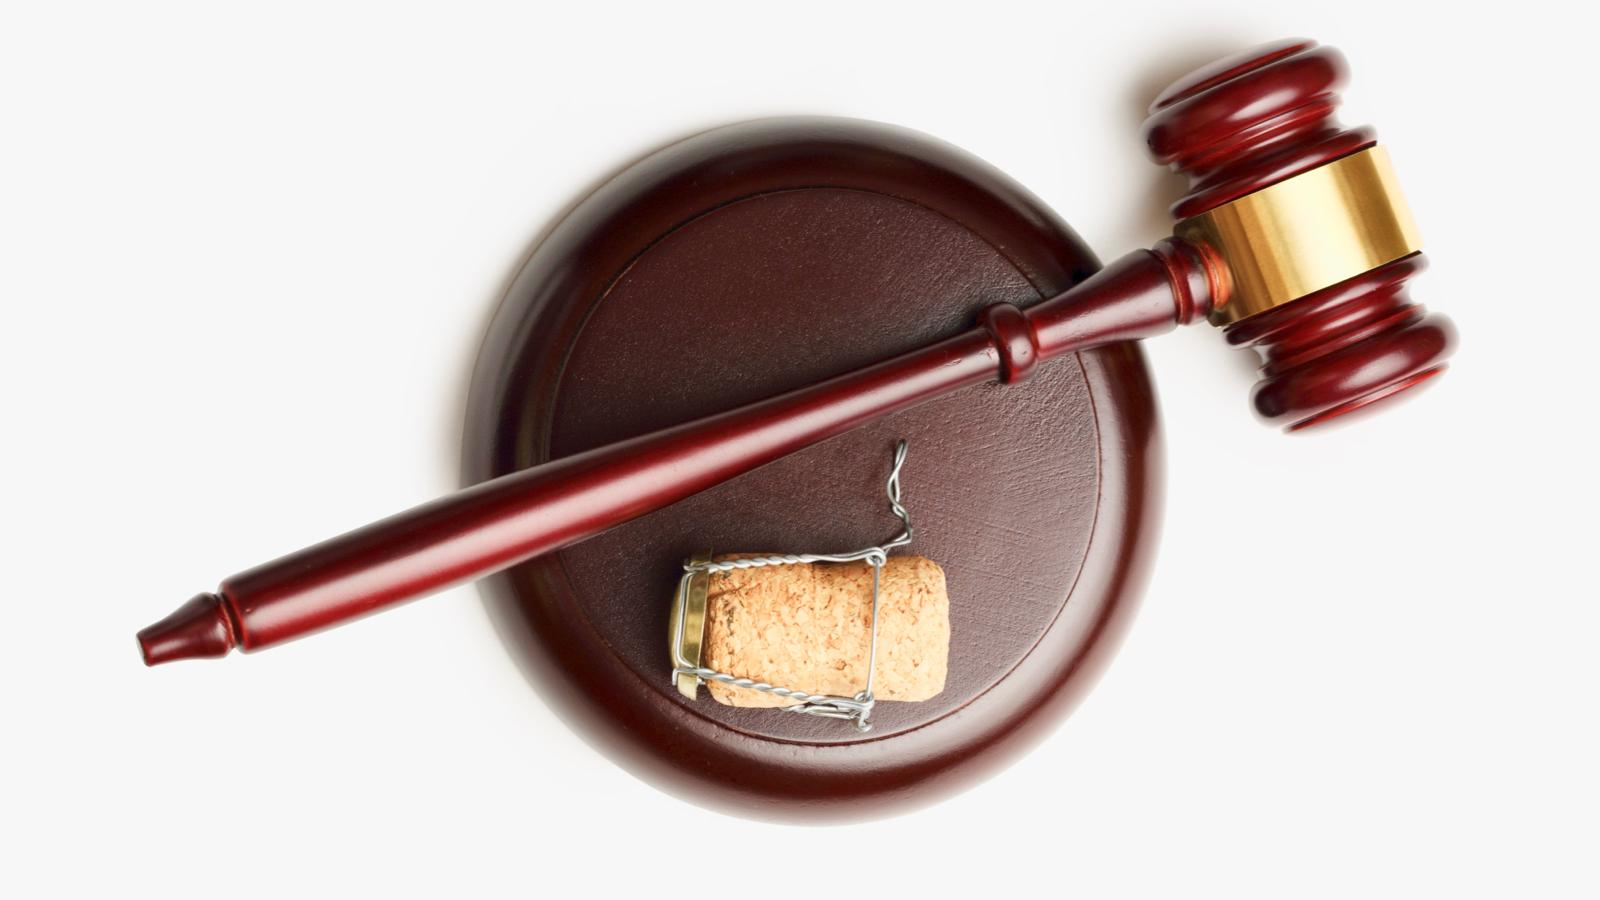 SND: Appeals Court Backs Wine Retailers in Illinois Shipping Case